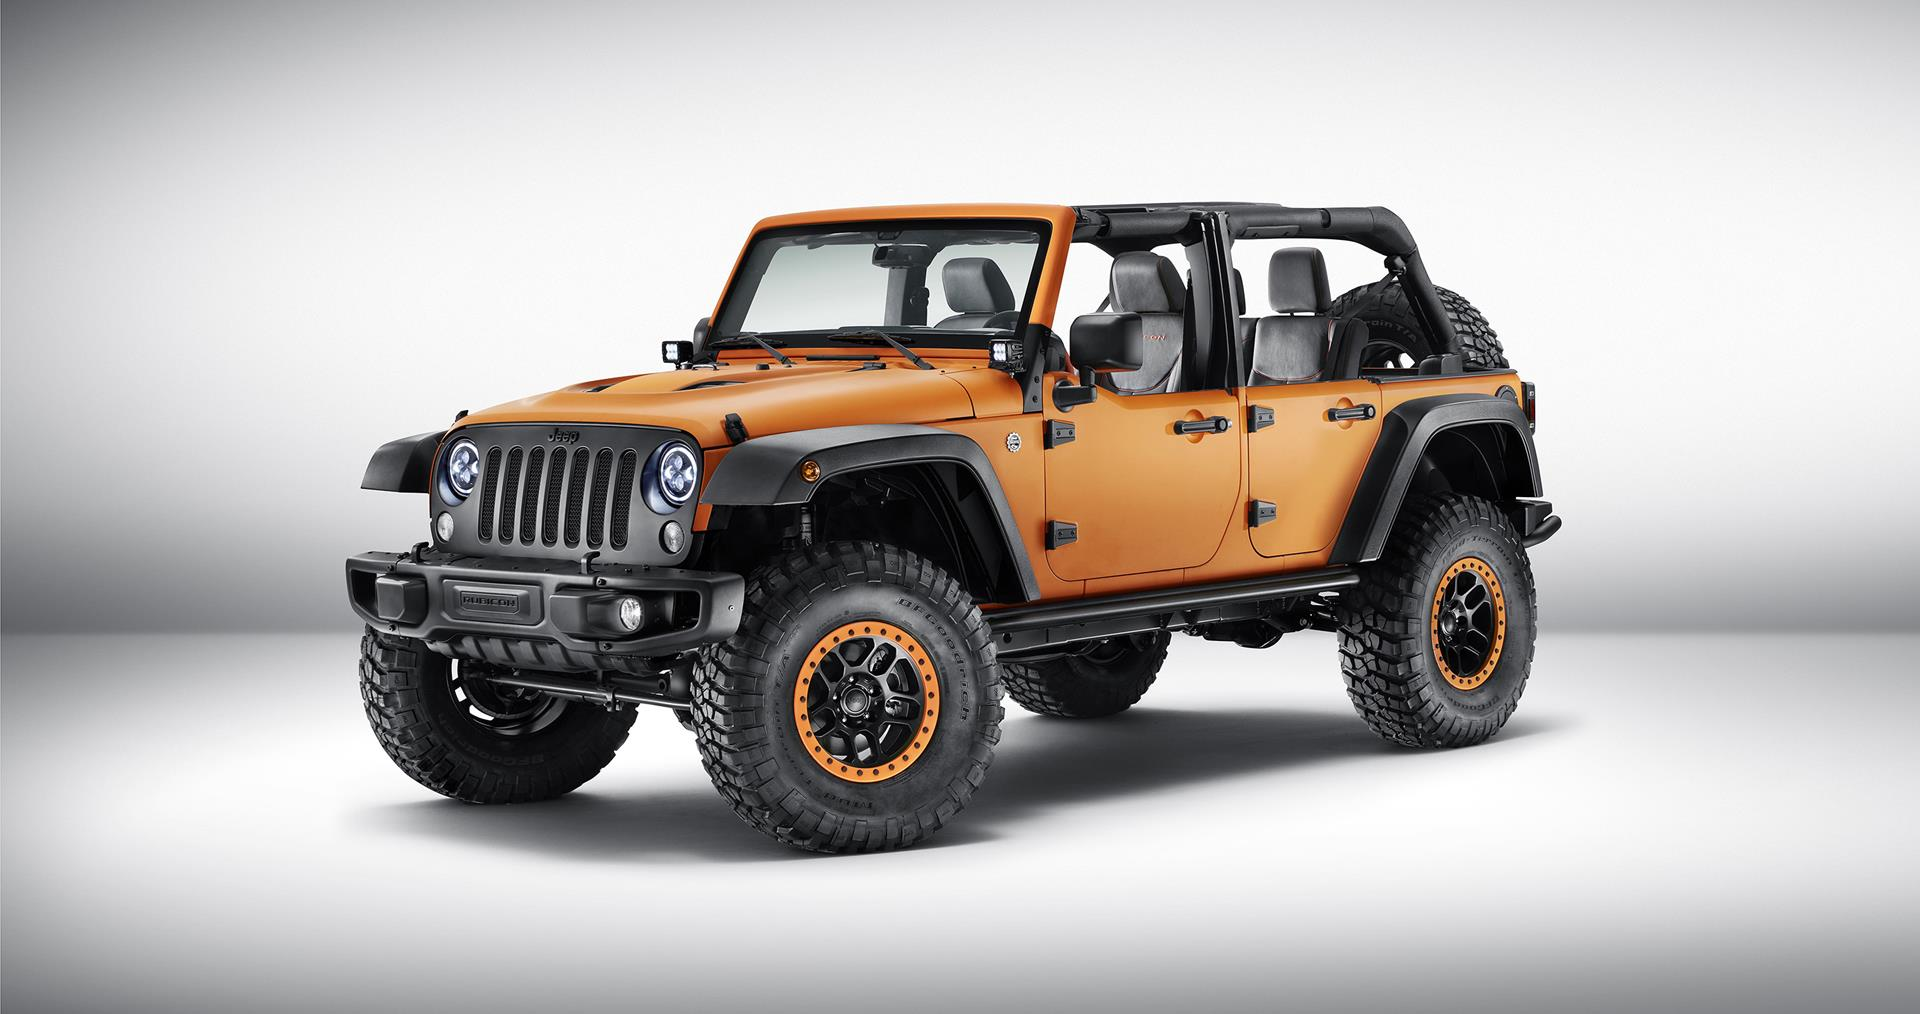 2015 Jeep Wrangler Rubicon Sunriser News And Information 2016